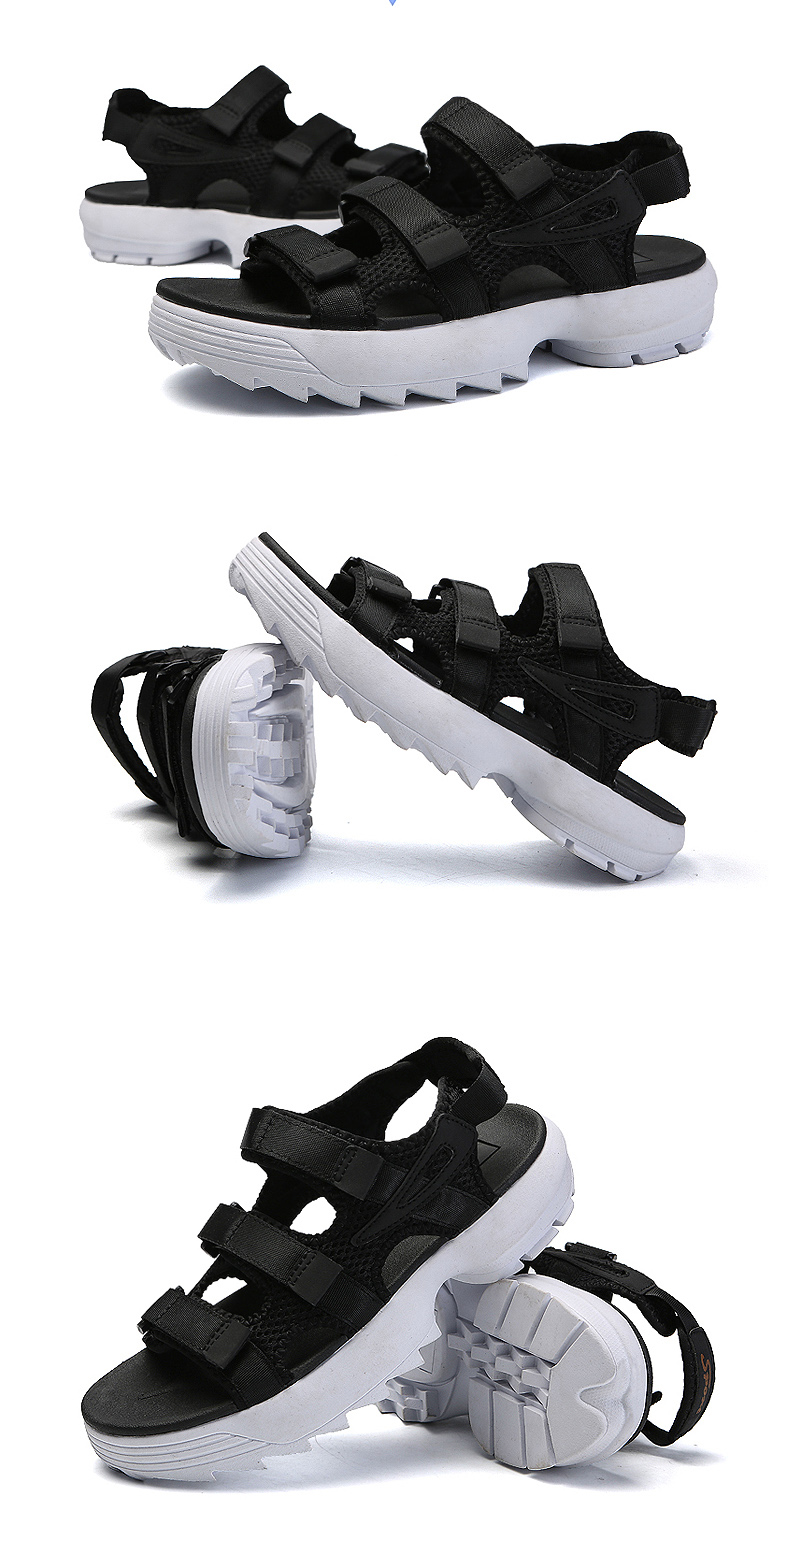 Sandals Men's Beach Shoes Summer Sports Korean Version Of The Trend Increase Big Sandals And Slippers Summer Boys Tide 25 Online shopping Bangladesh